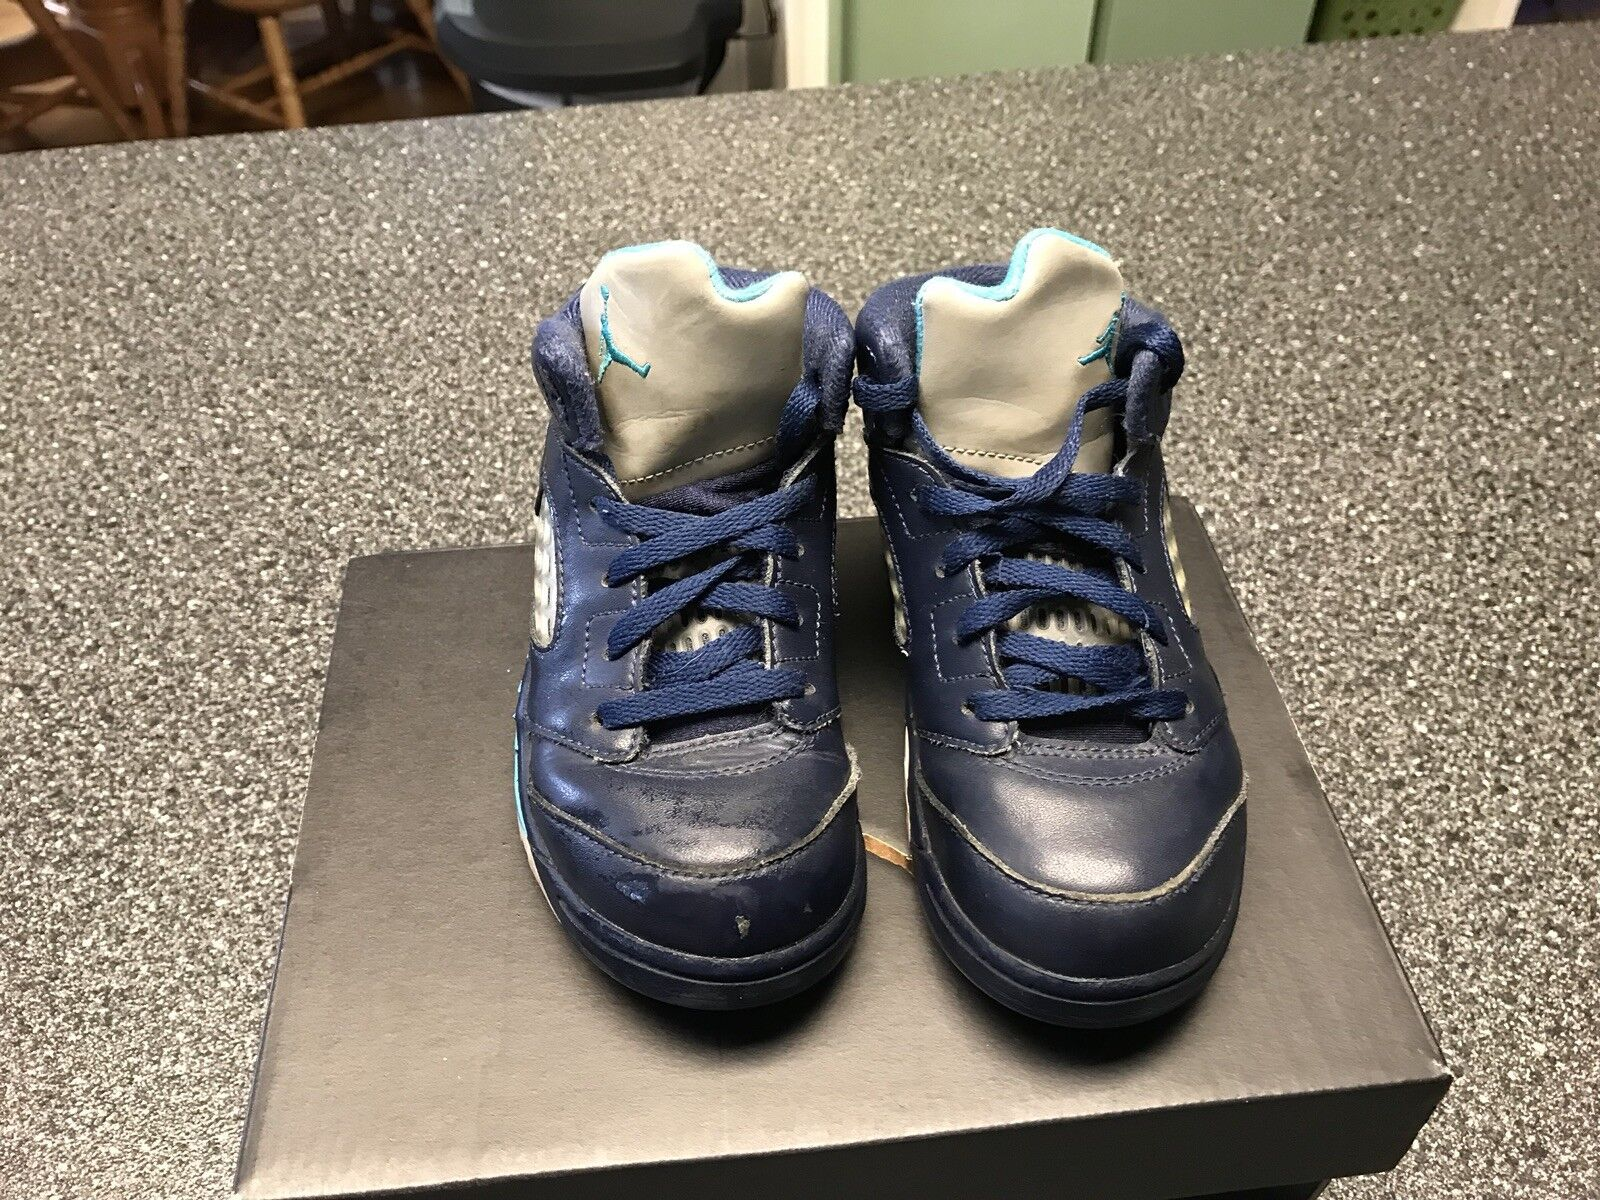 9b3dbe116ac8a Jordan 5 Grape Todler 10 Retro Size nnghvy6523-Athletic Shoes - www ...